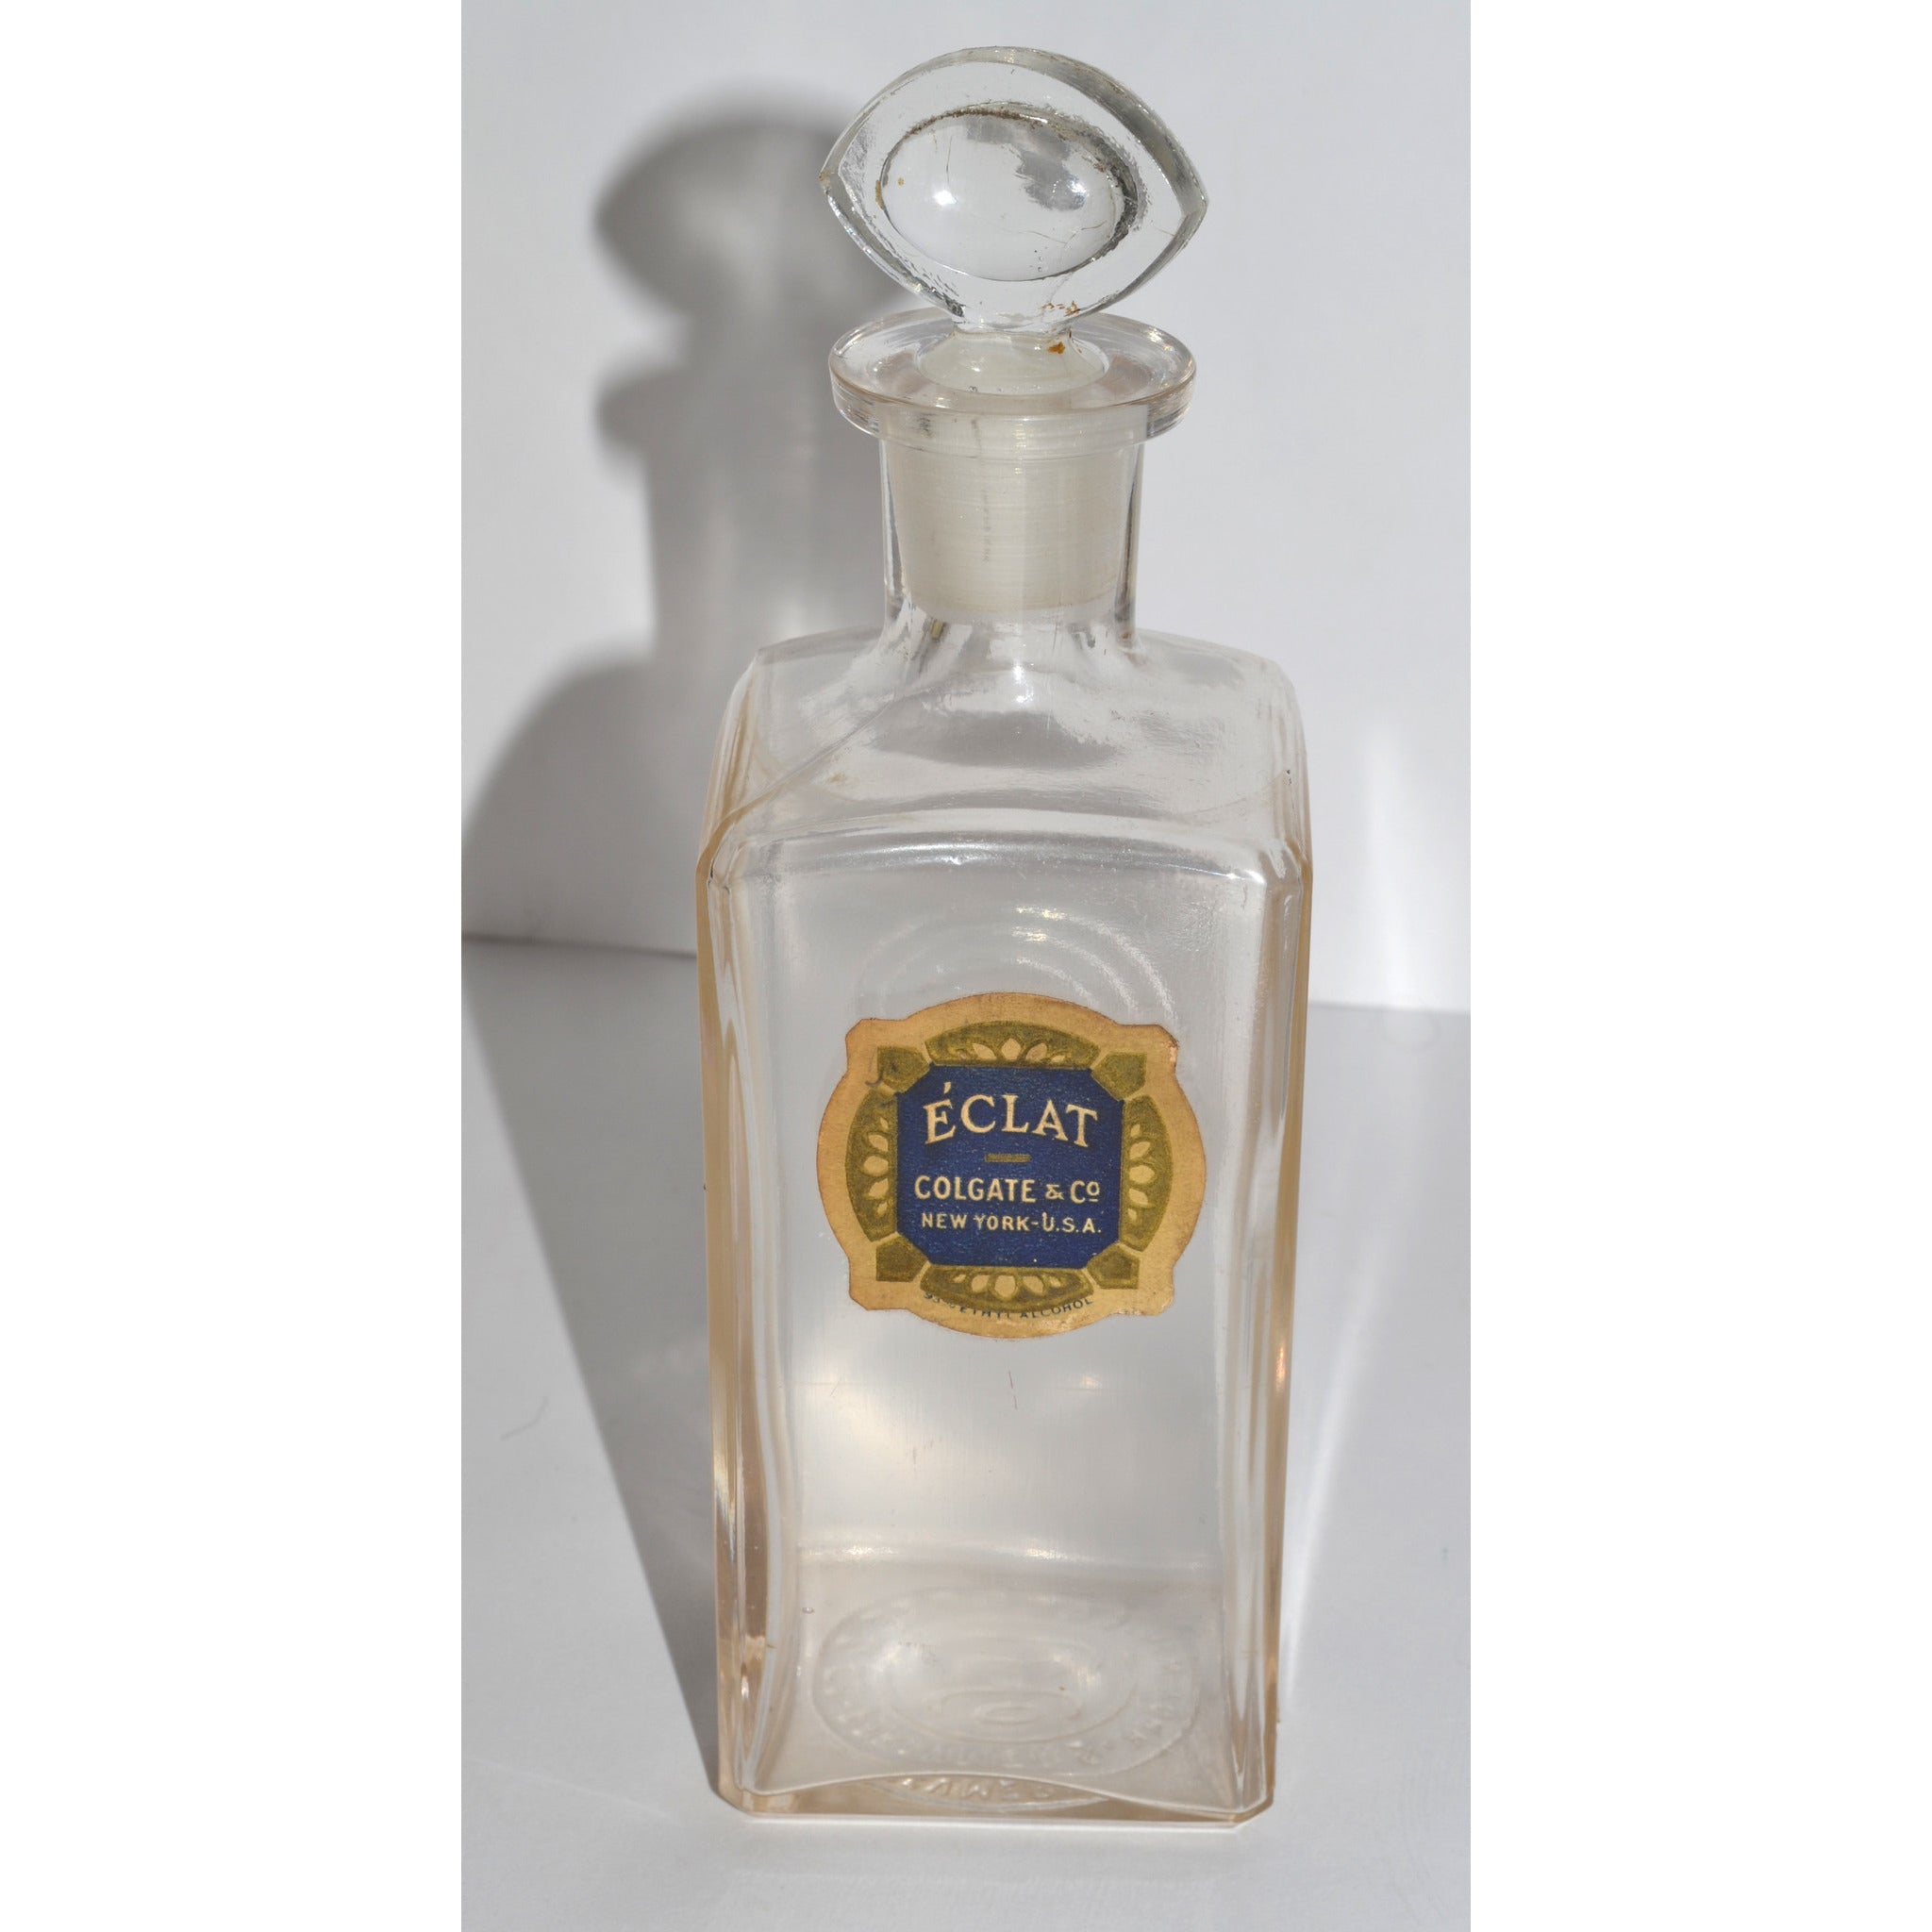 Antique Eclat Apothecary Bottle By Colgate & Co.